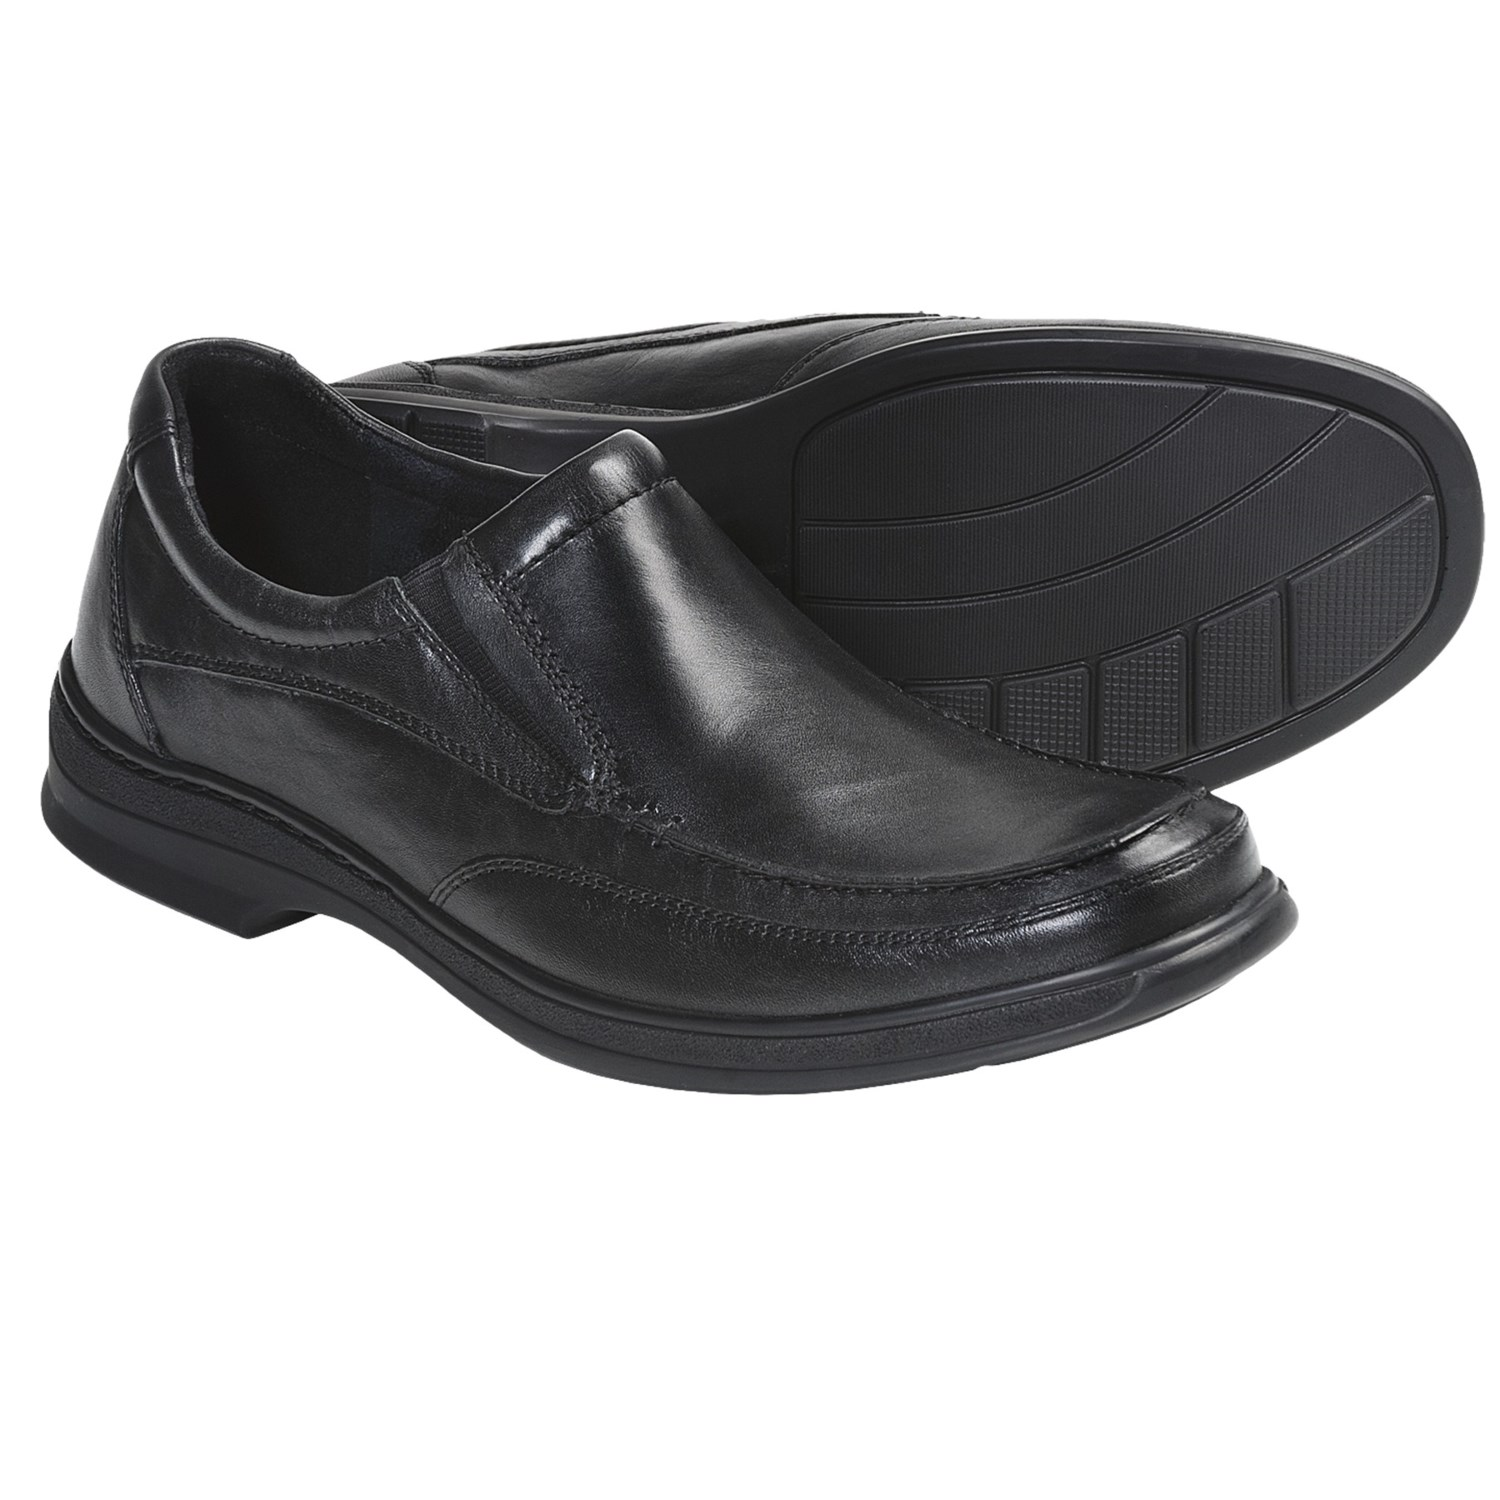 clarks-euclid-gore-shoes-slip-ons-for-me